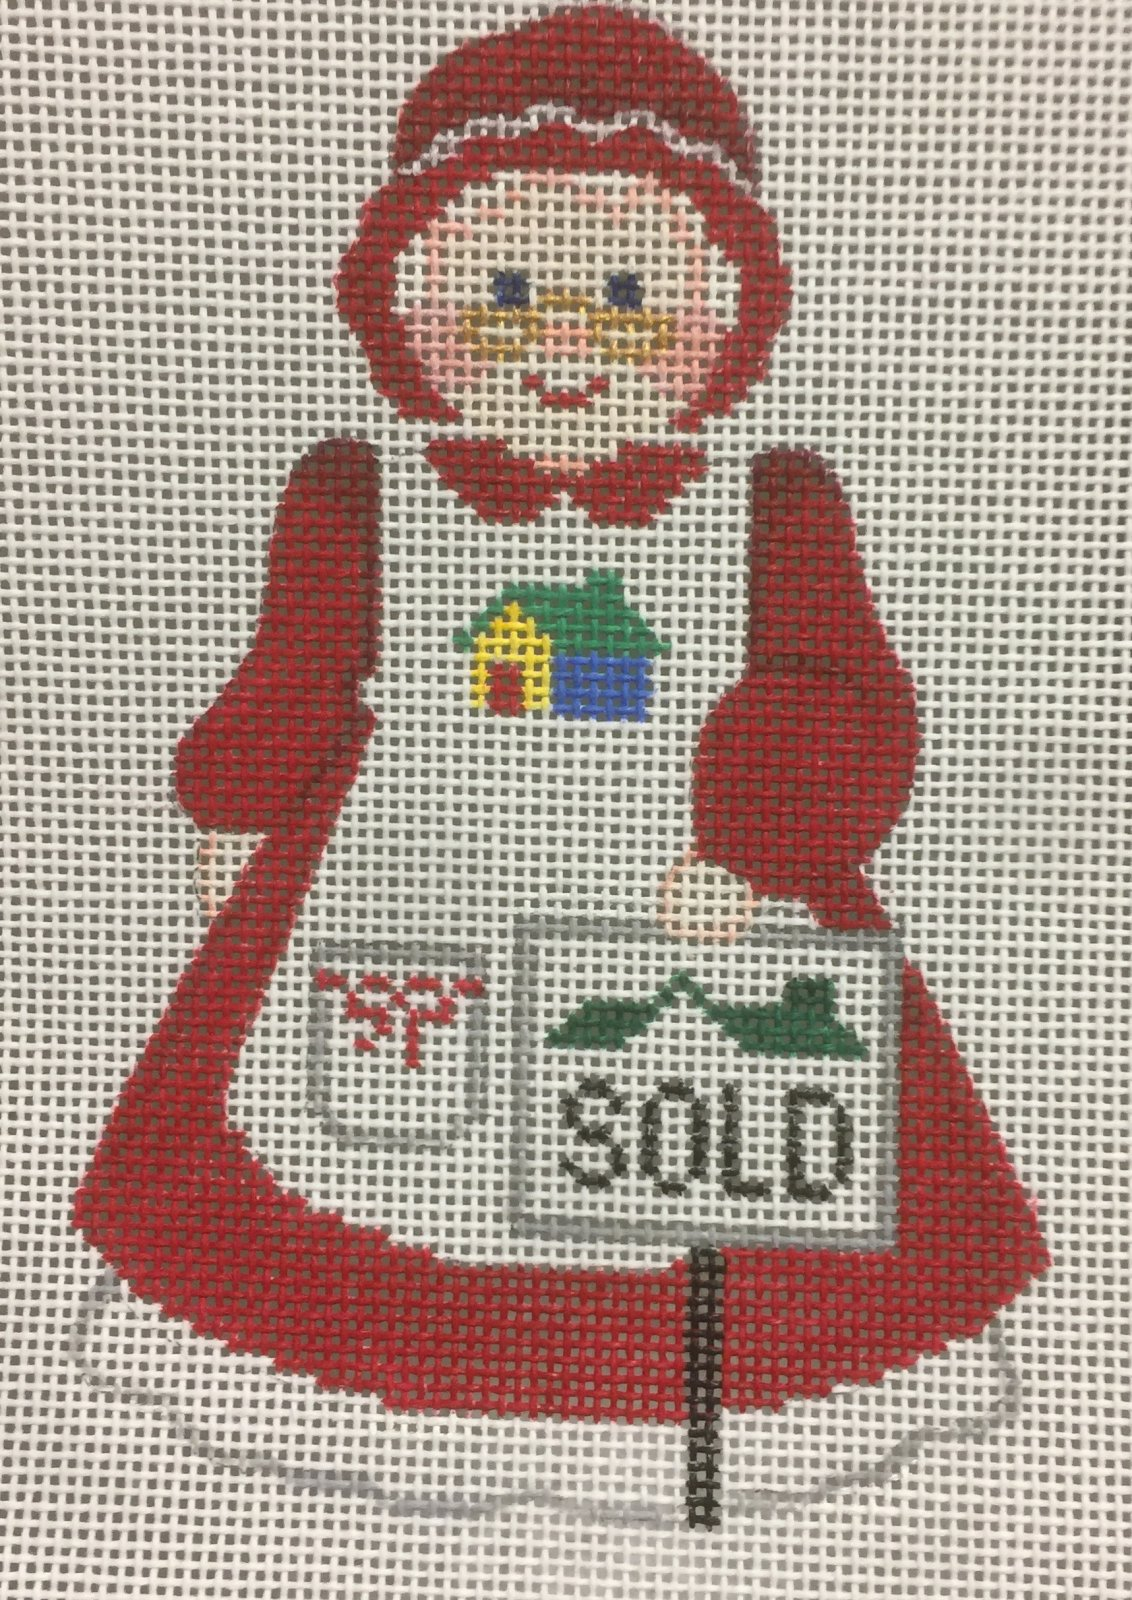 Mrs. Claus - Sold